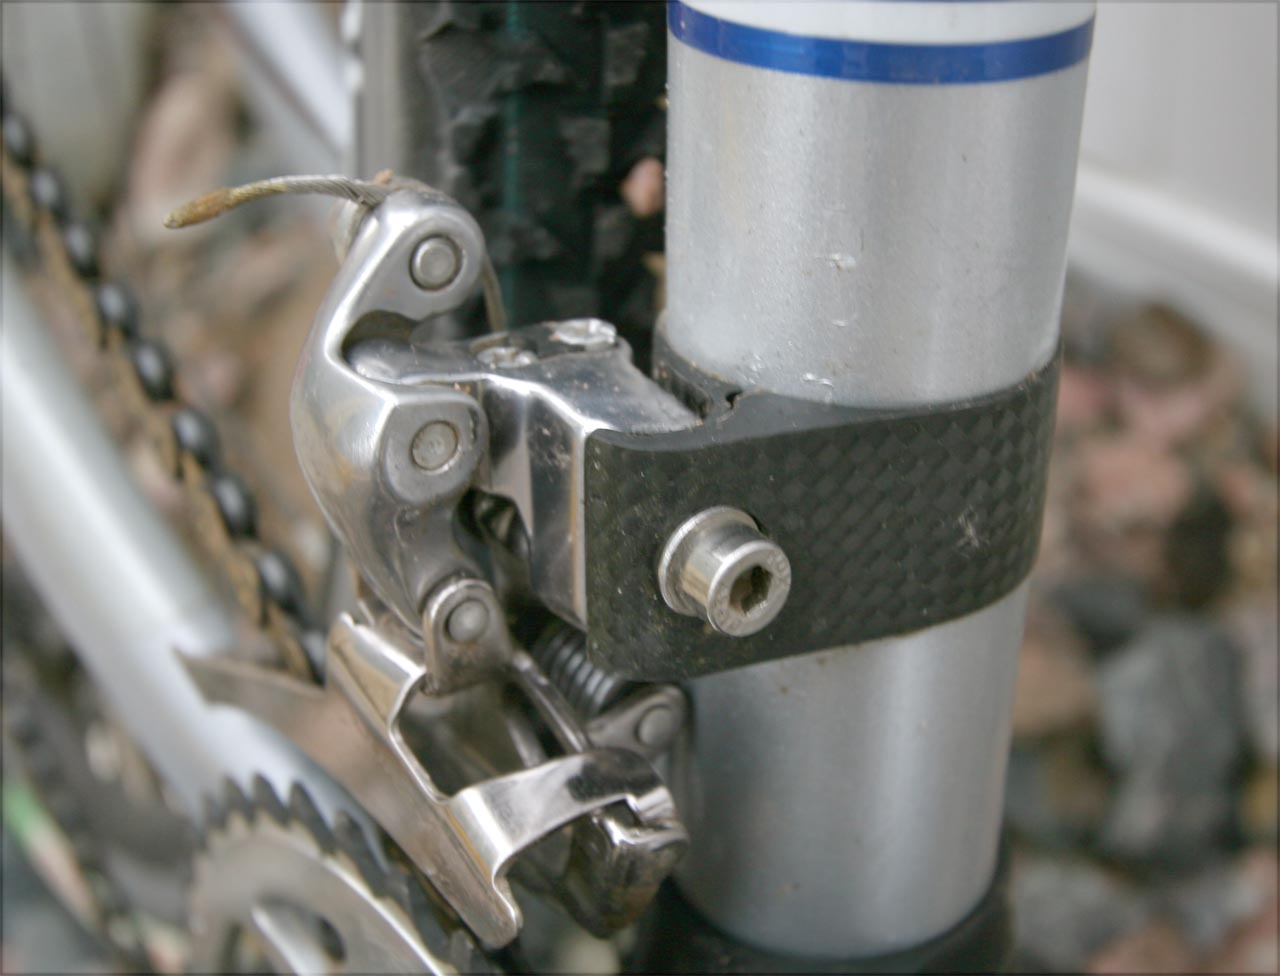 A wonky front derailleur can ruin your race. Make sure yours doesn't stand in your way!